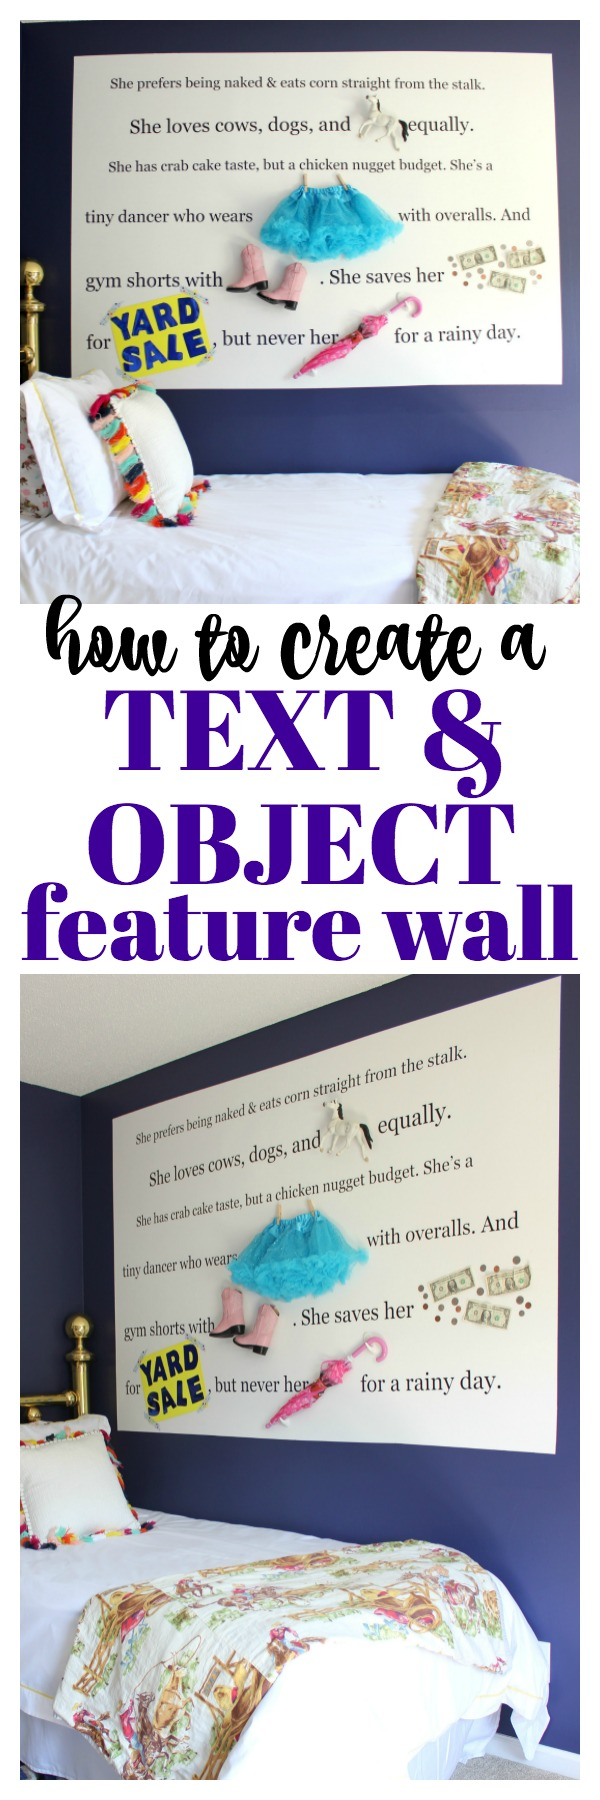 Learn how to create an object and text feature wall - perfect for a kid's room and totally customizable! Great way to add unique personality to a space!